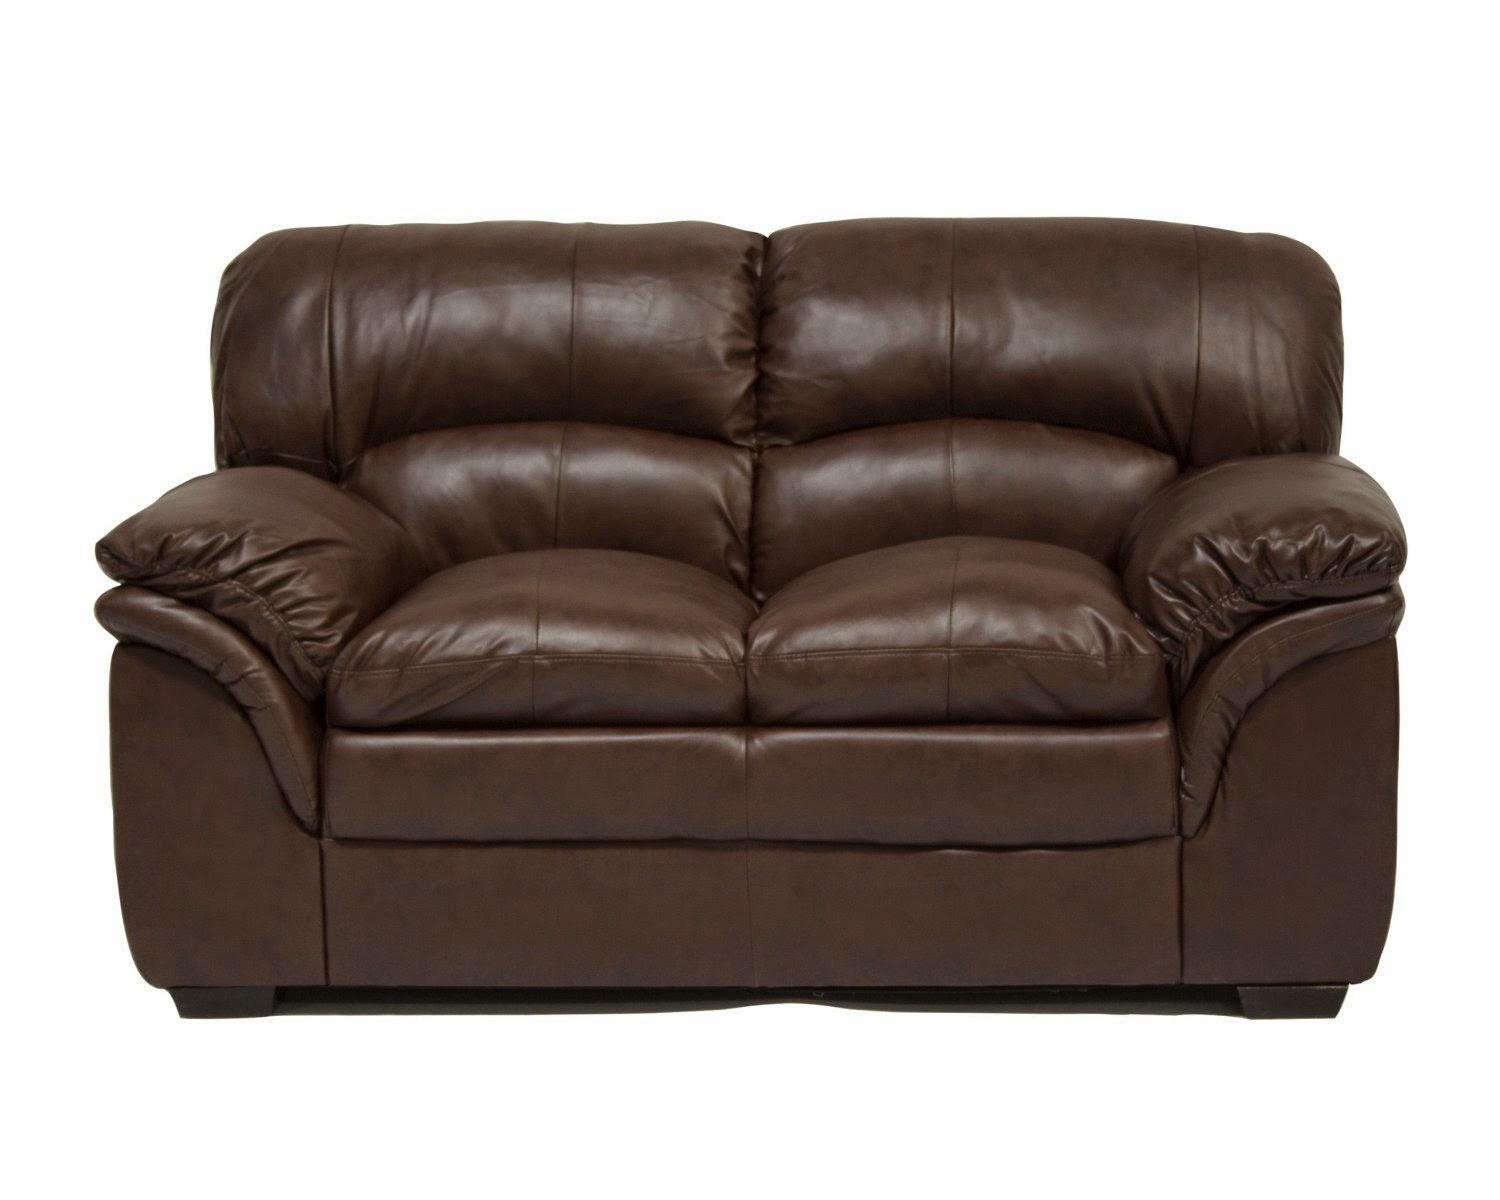 20 Ideas Of 2 Seater Recliner Leather Sofas Sofa